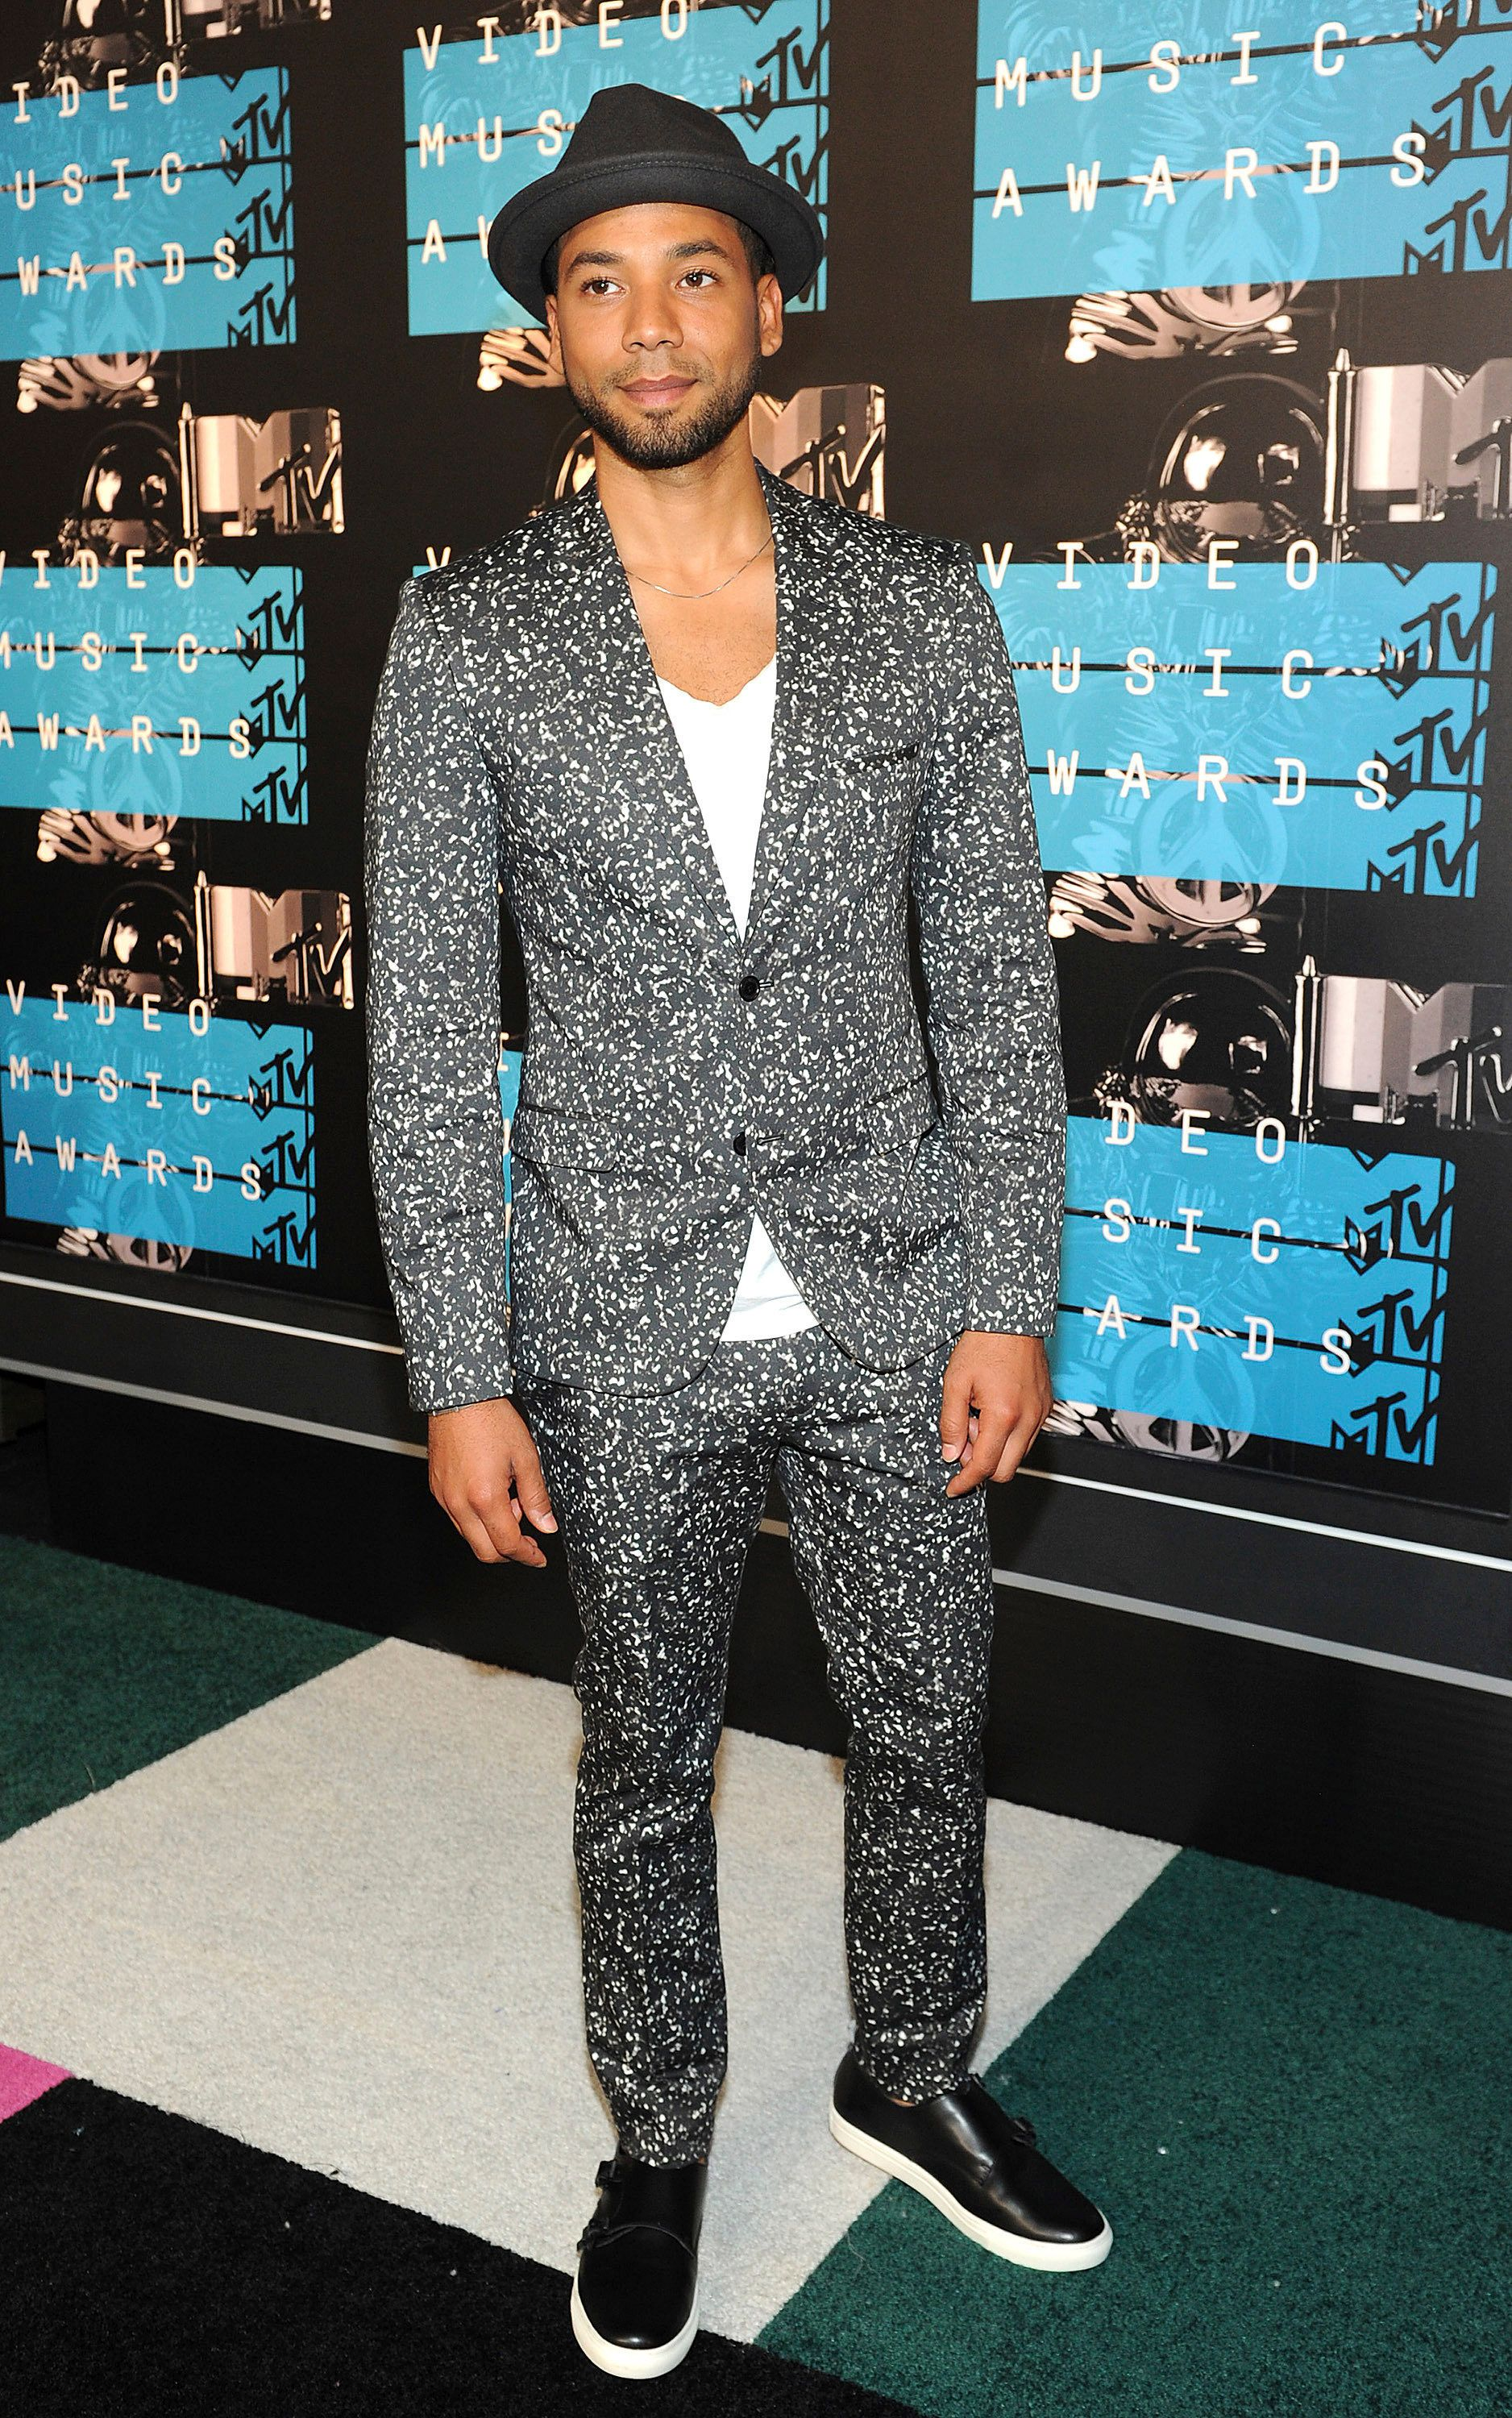 LOS ANGELES - AUGUST 30: Jussie Smollett arrives at the 2015 MTV Video Music Awards at the Microsoft Theater on August 30, 2015 in Los Angeles, California.Credit: FMPG/MediaPunch /IPX